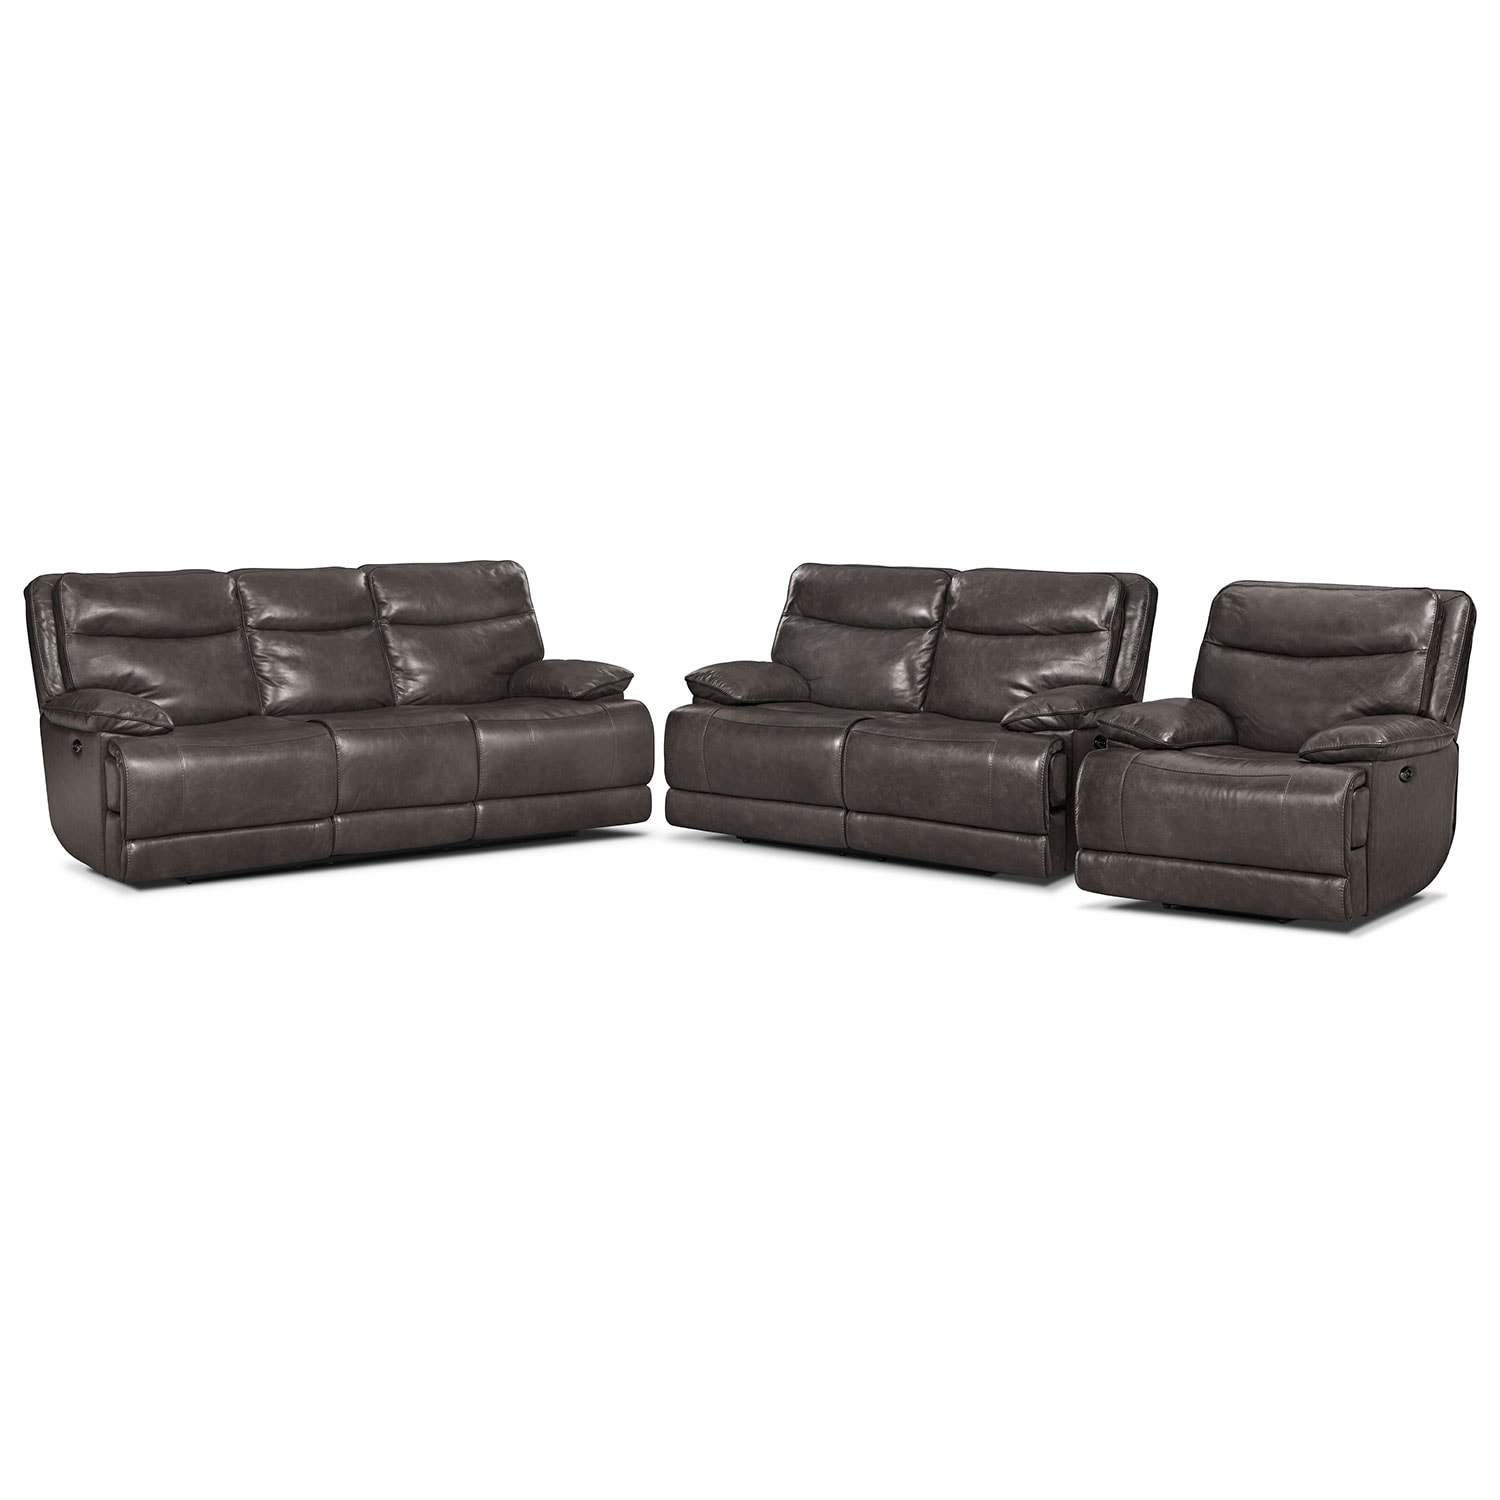 Monaco Power Reclining Sofa, Reclining Loveseat and Recliner Set - Gray